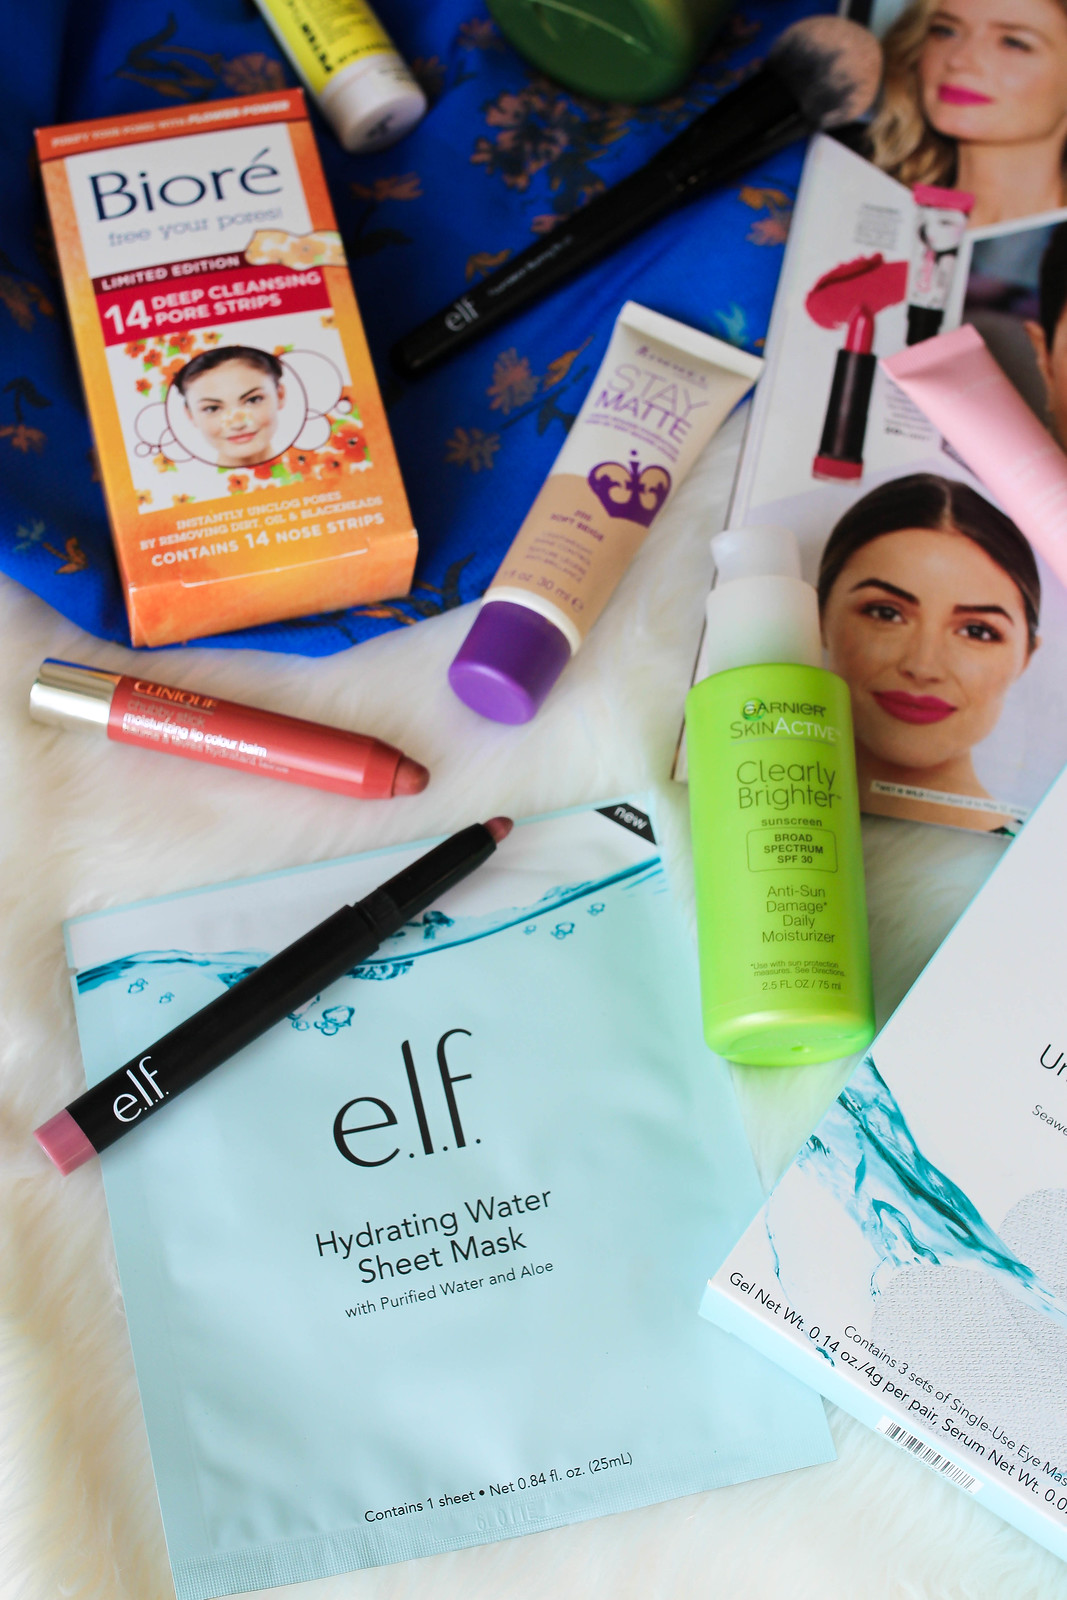 e.l.f. Hydrating Water Sheet Mask Review